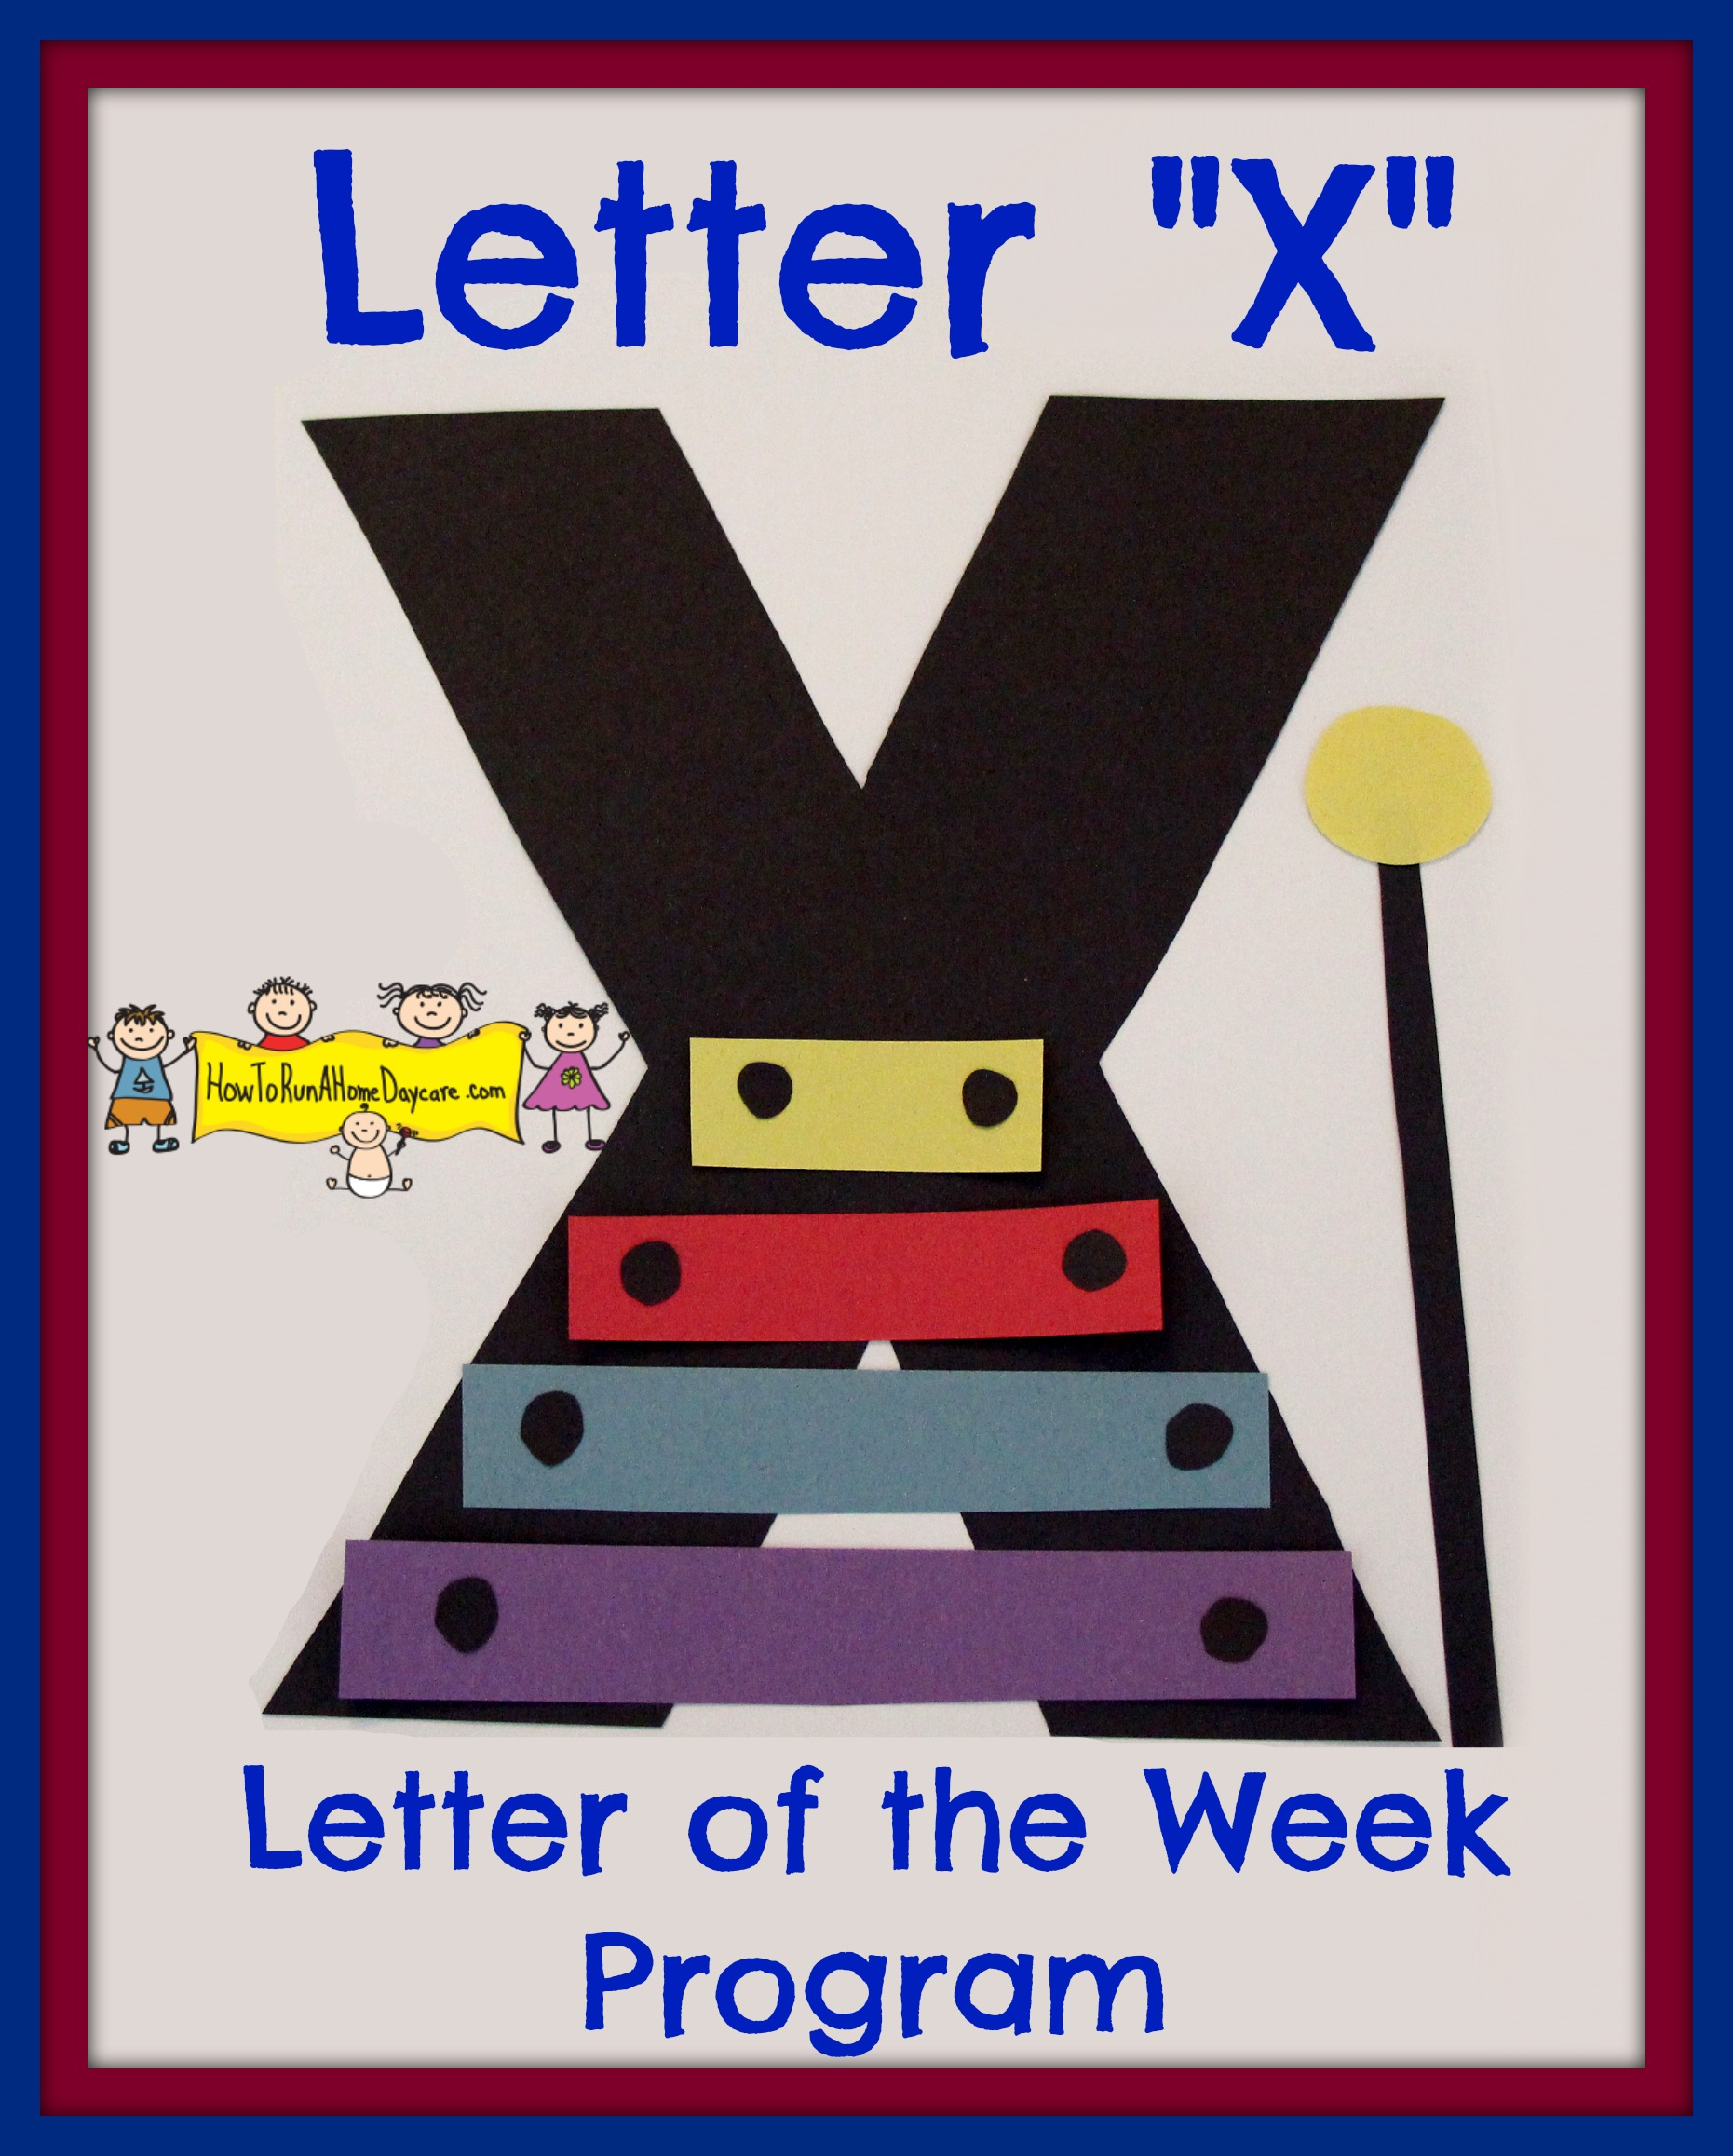 letter x letter of the week program how to run a home daycare. Black Bedroom Furniture Sets. Home Design Ideas